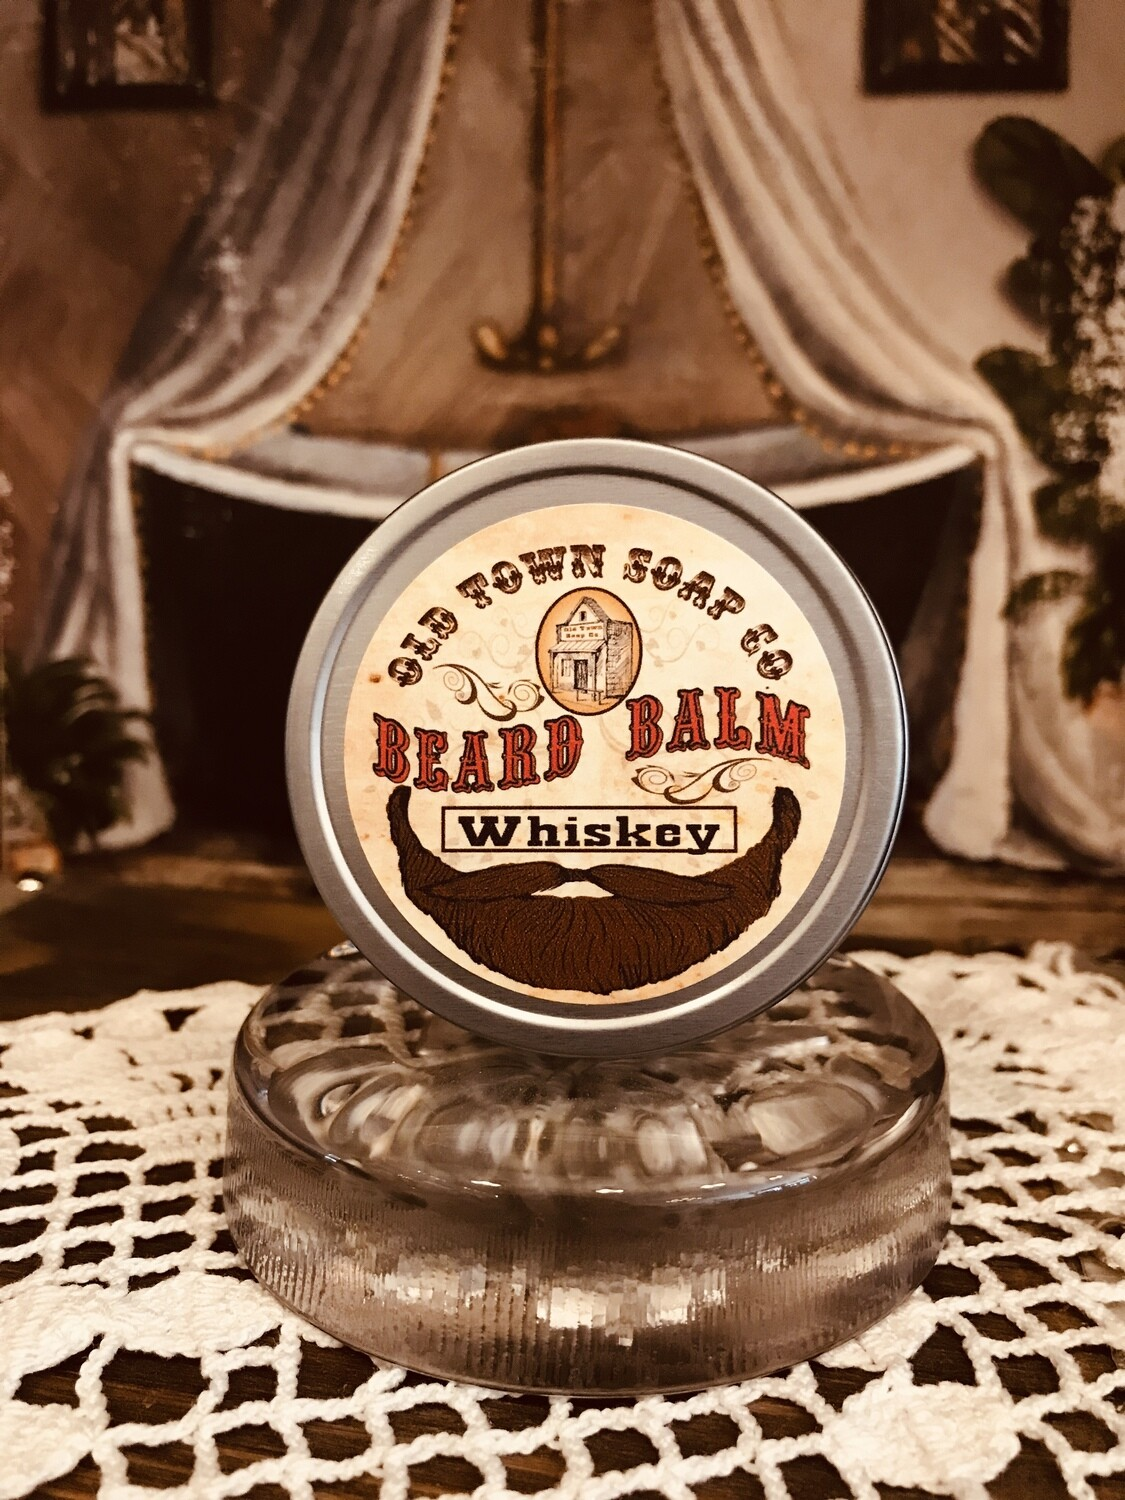 Whiskey -Beard Balm